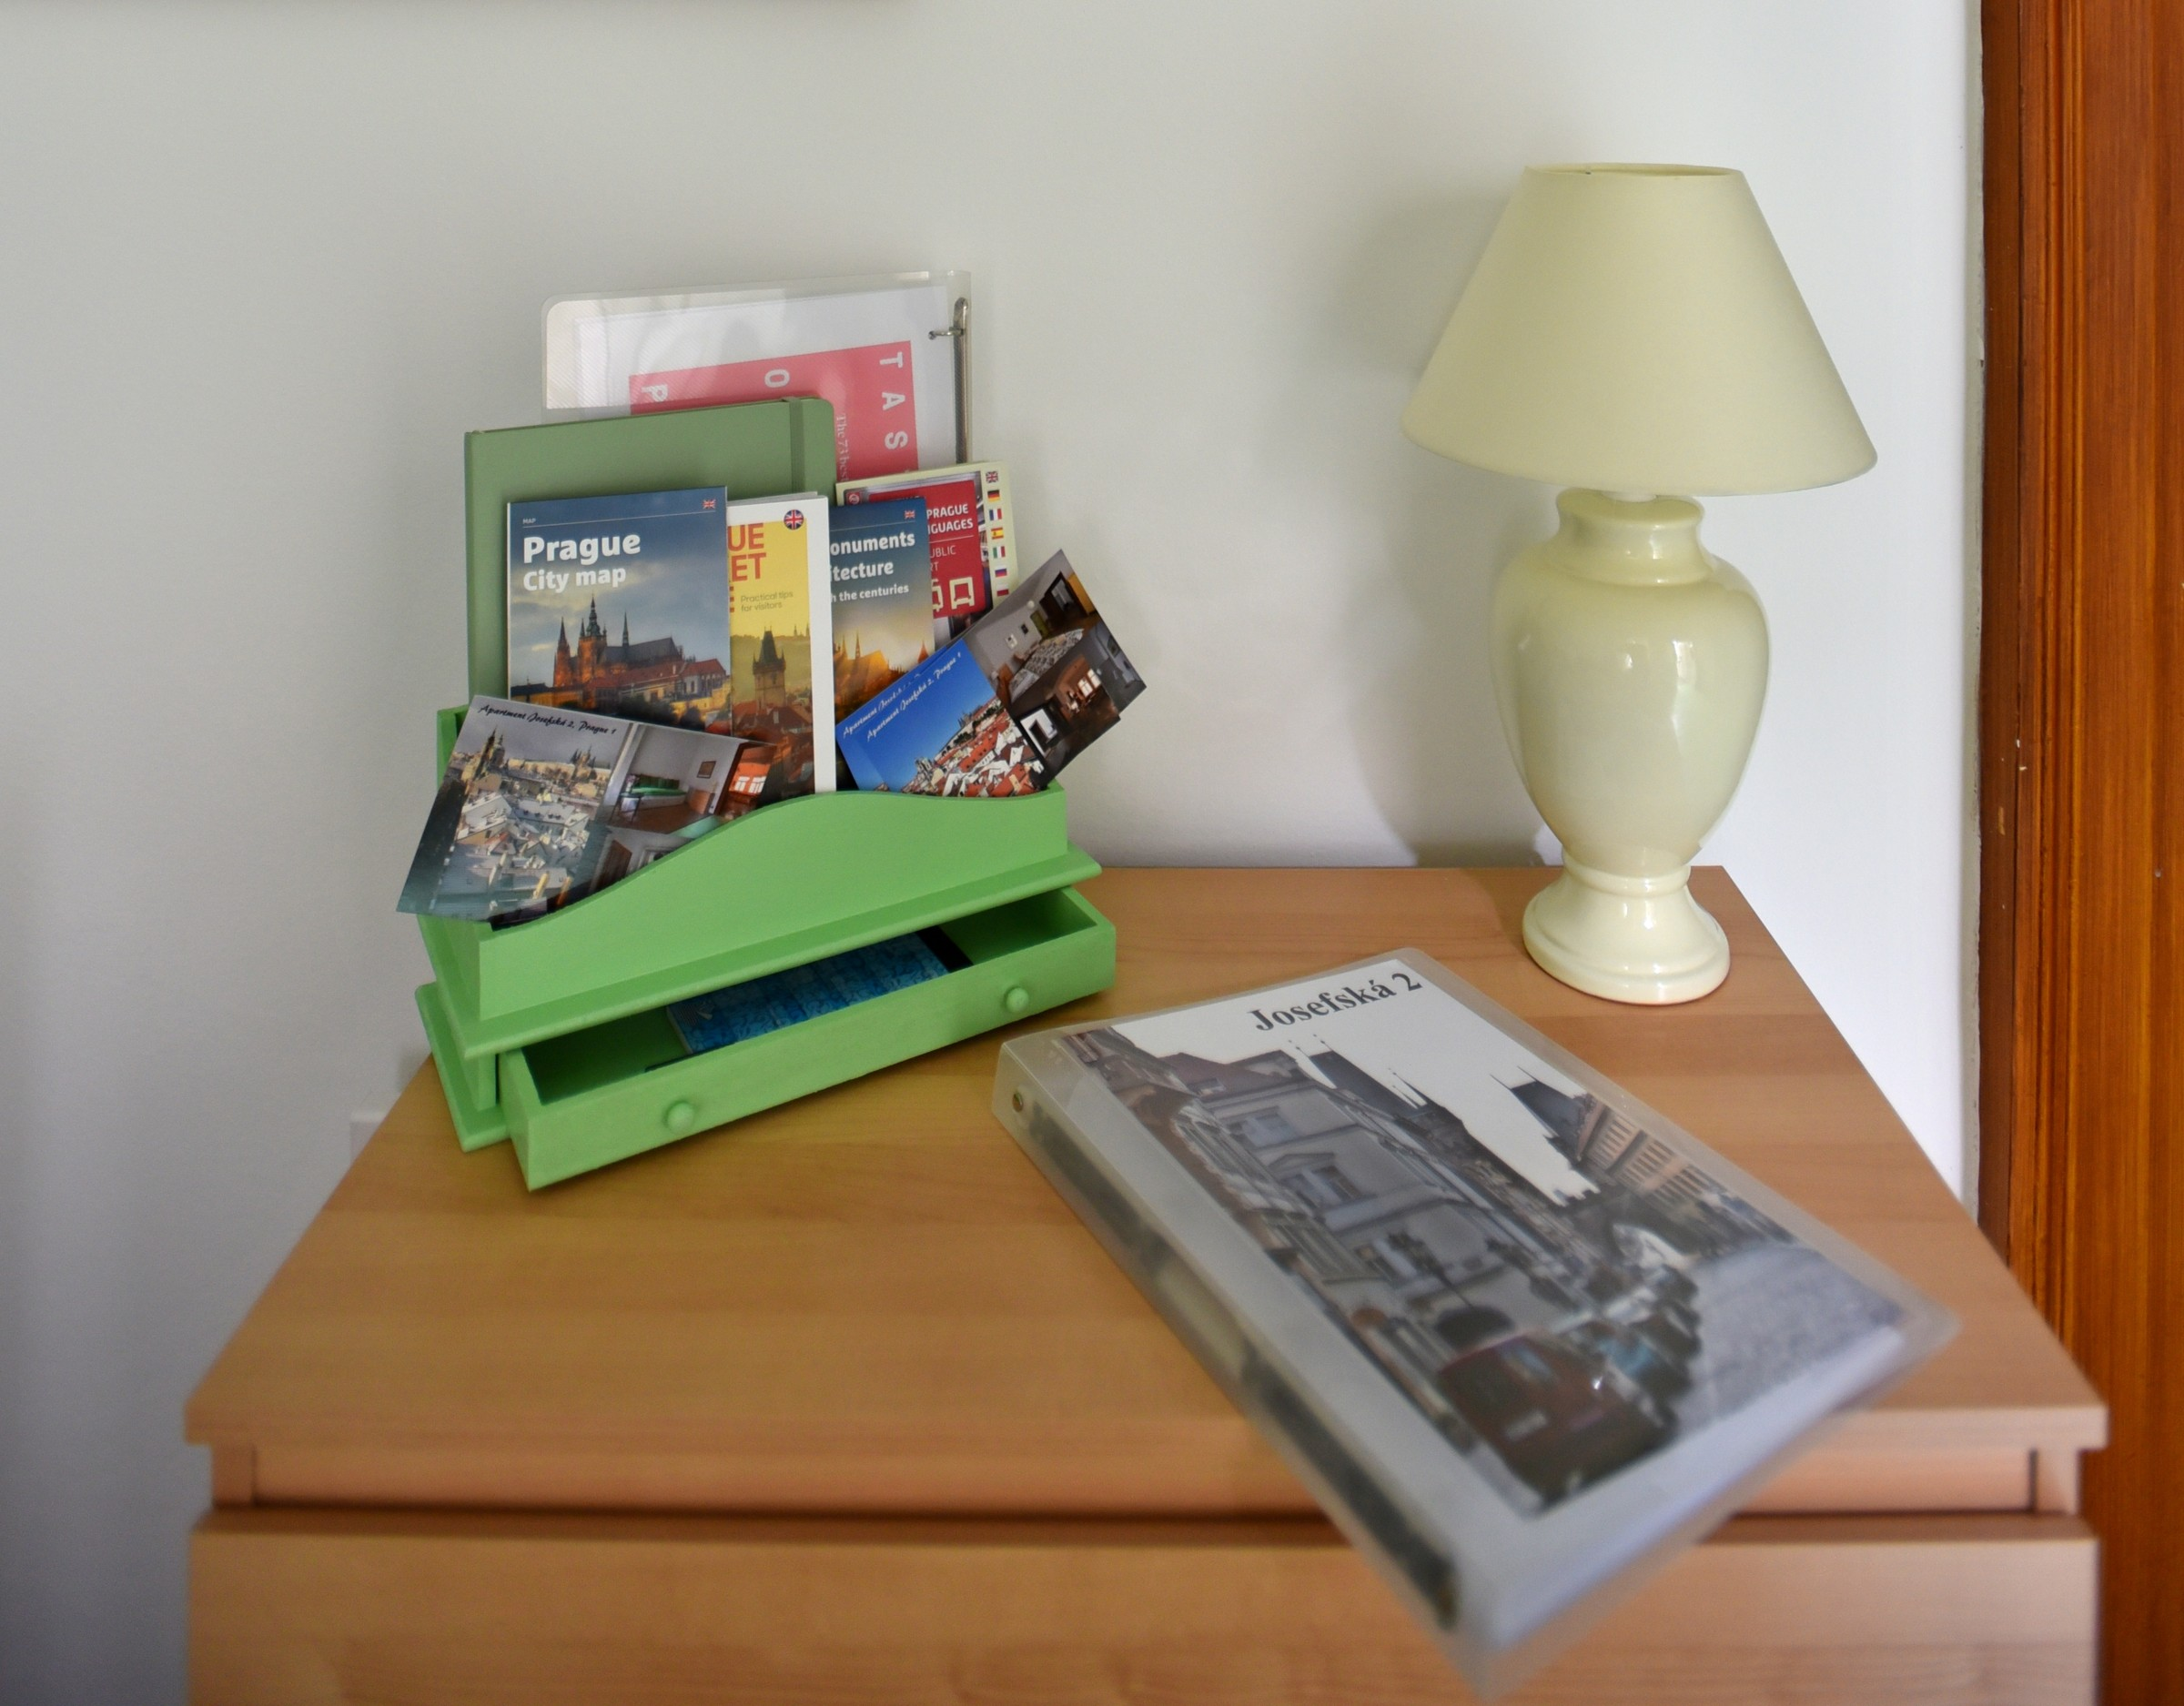 There Is Free WiFi Throughout The Apartment And A Selection Of Plans Of  Prague And Guide Books Can Be Found In The Entry Sitting Area.